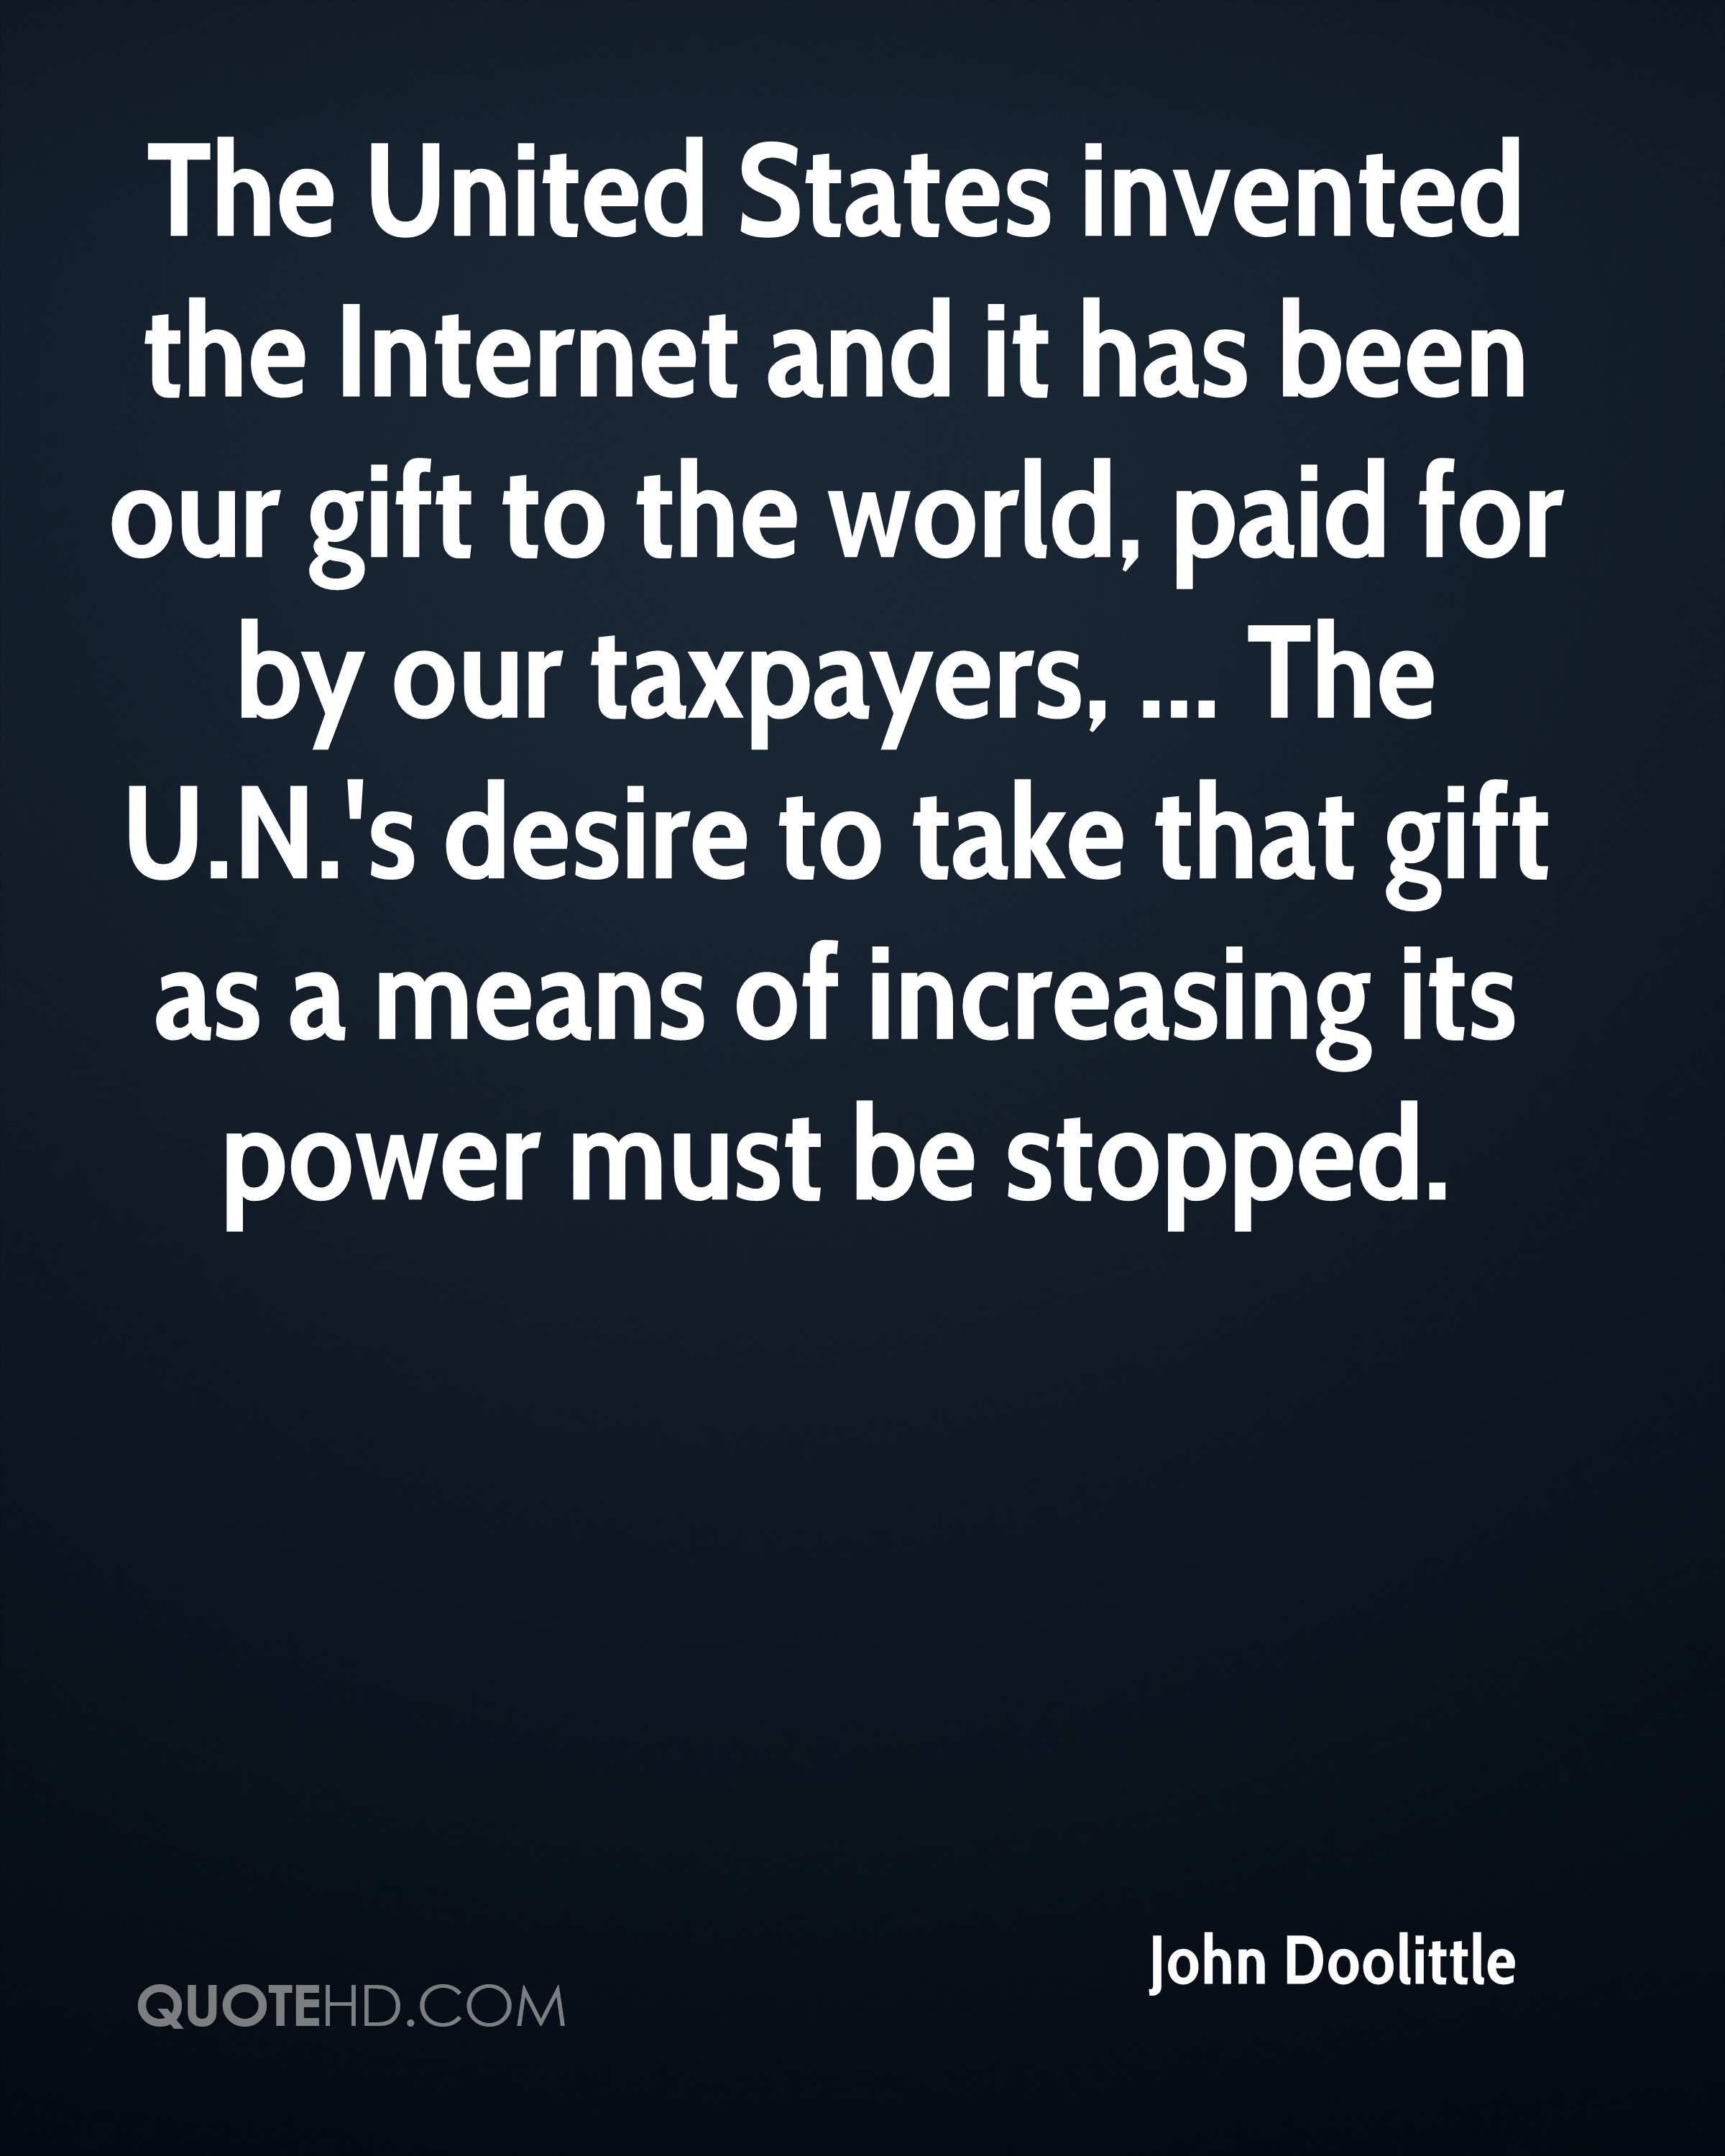 The United States invented the Internet and it has been our gift to the world, paid for by our taxpayers, ... The U.N.'s desire to take that gift as a means of increasing its power must be stopped.